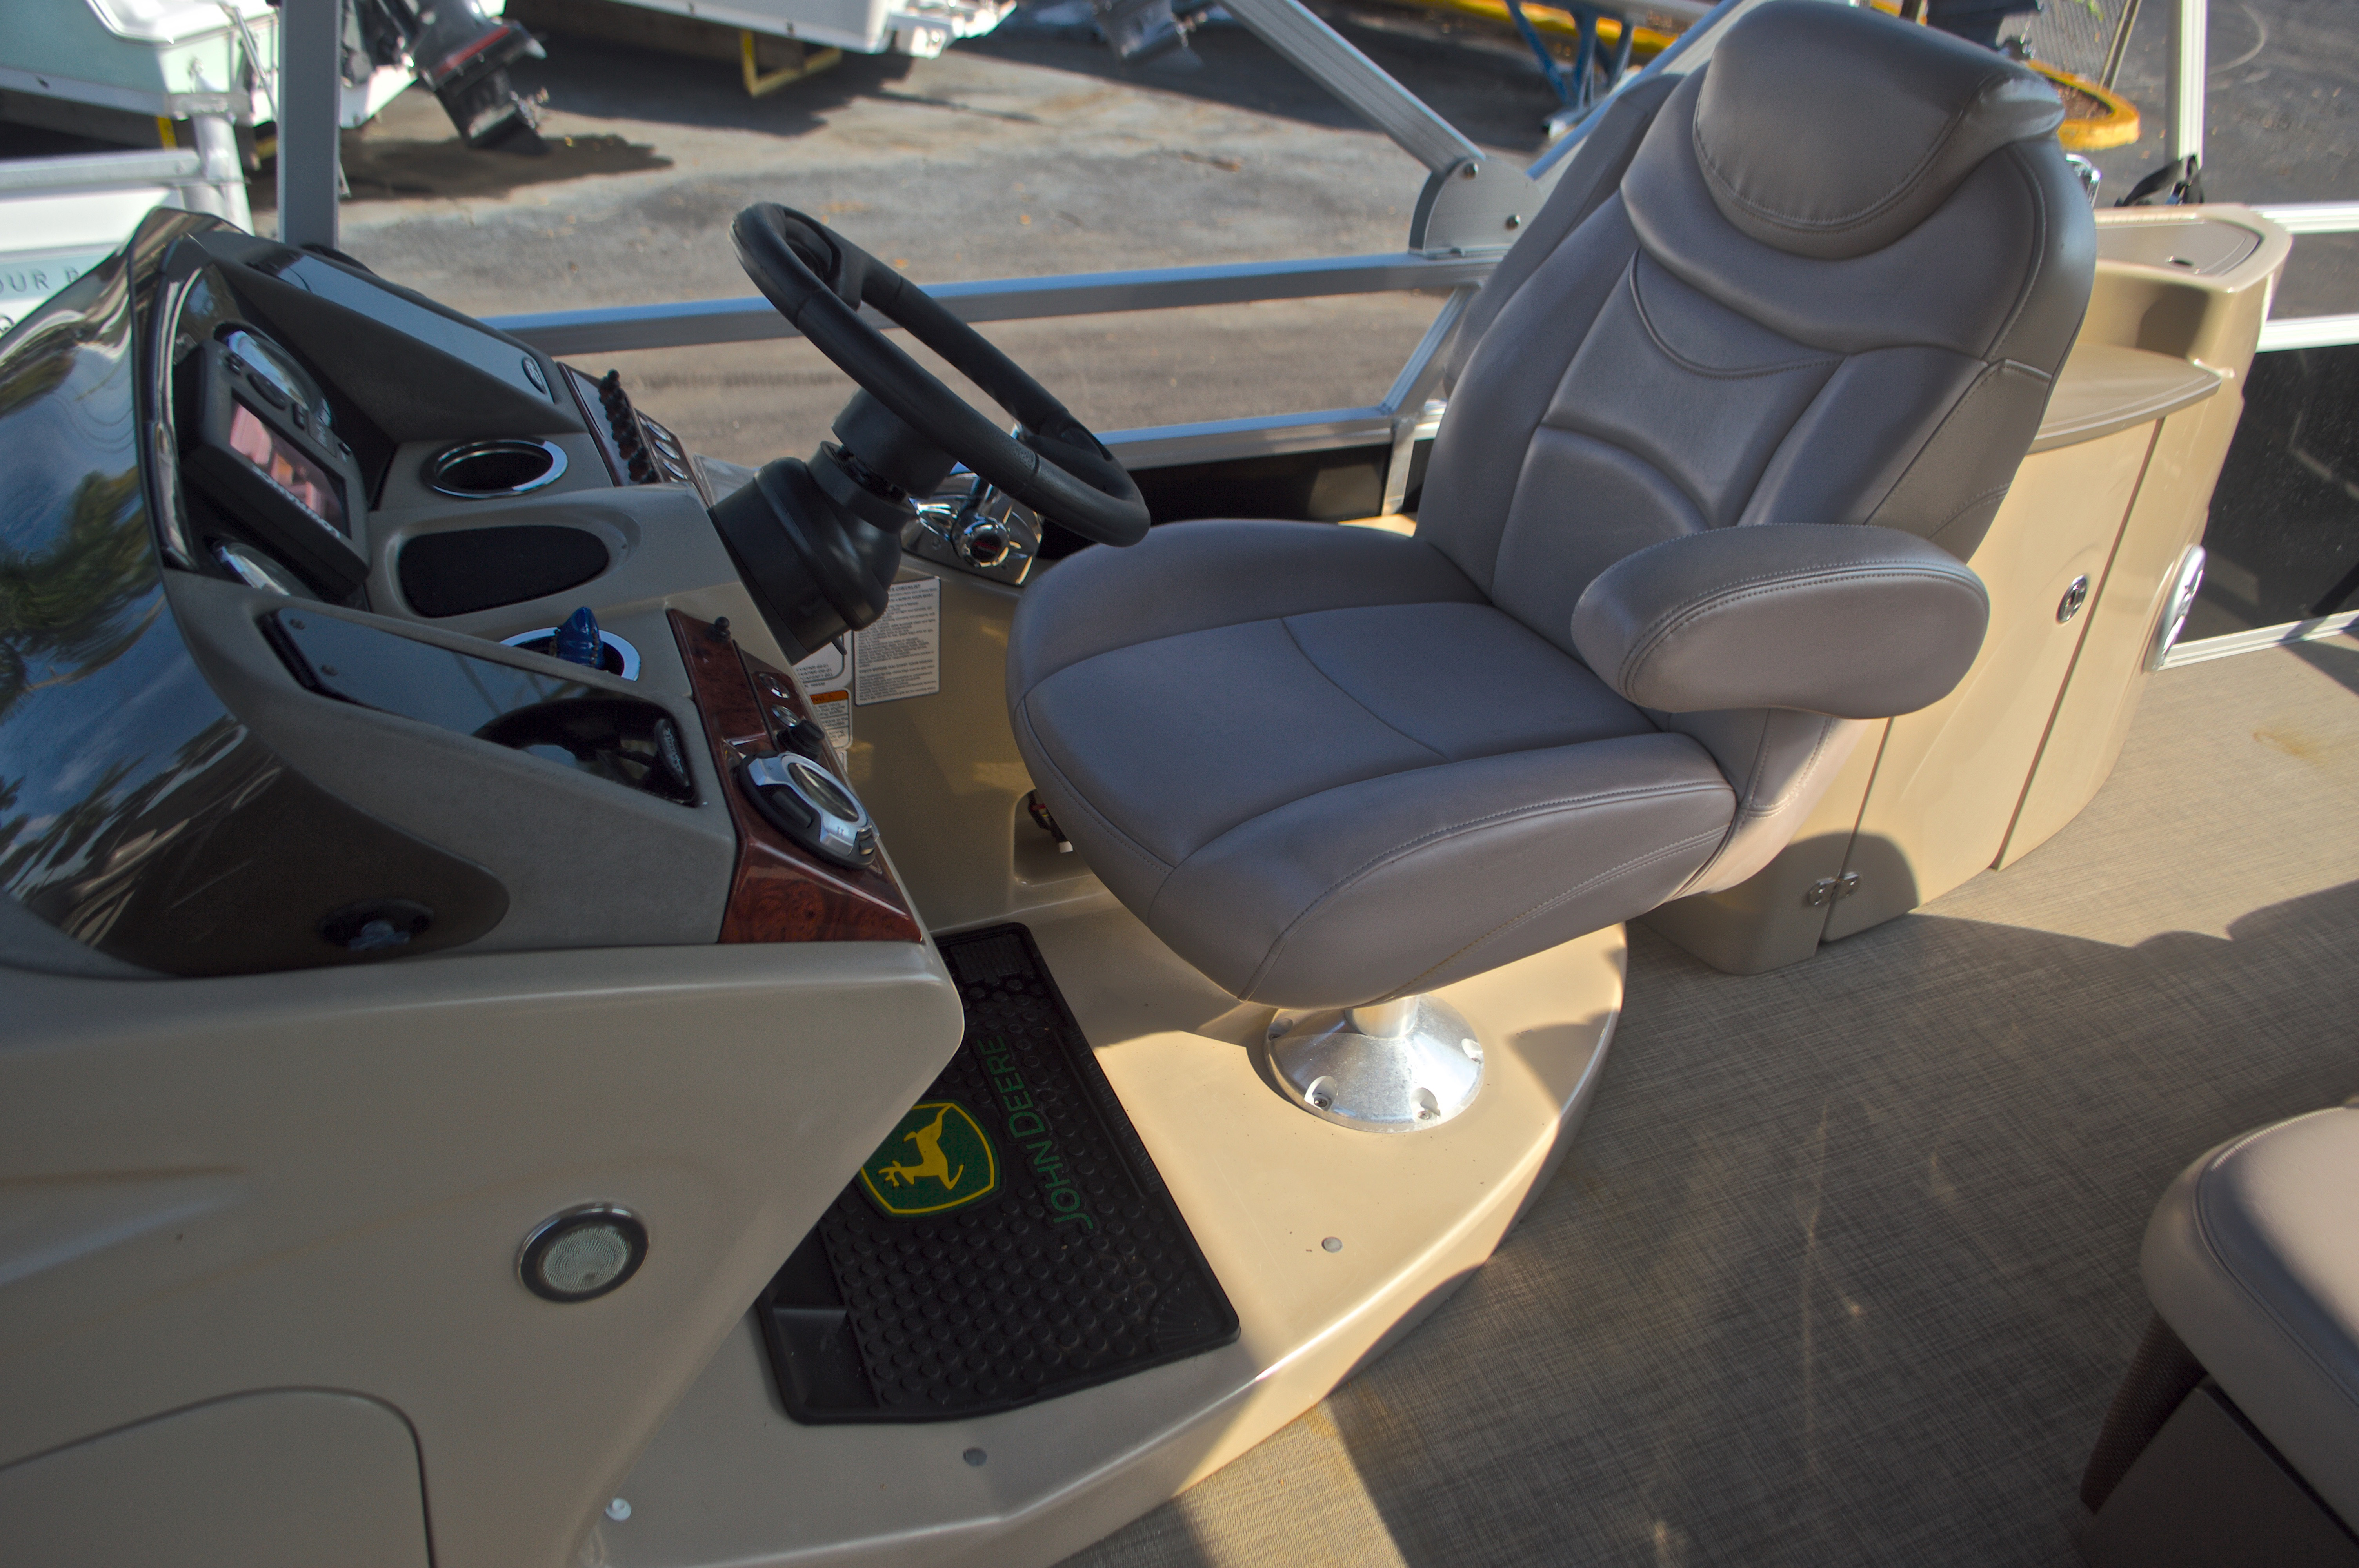 Thumbnail 29 for Used 2014 Regency Party Barge 254 XP3 boat for sale in West Palm Beach, FL